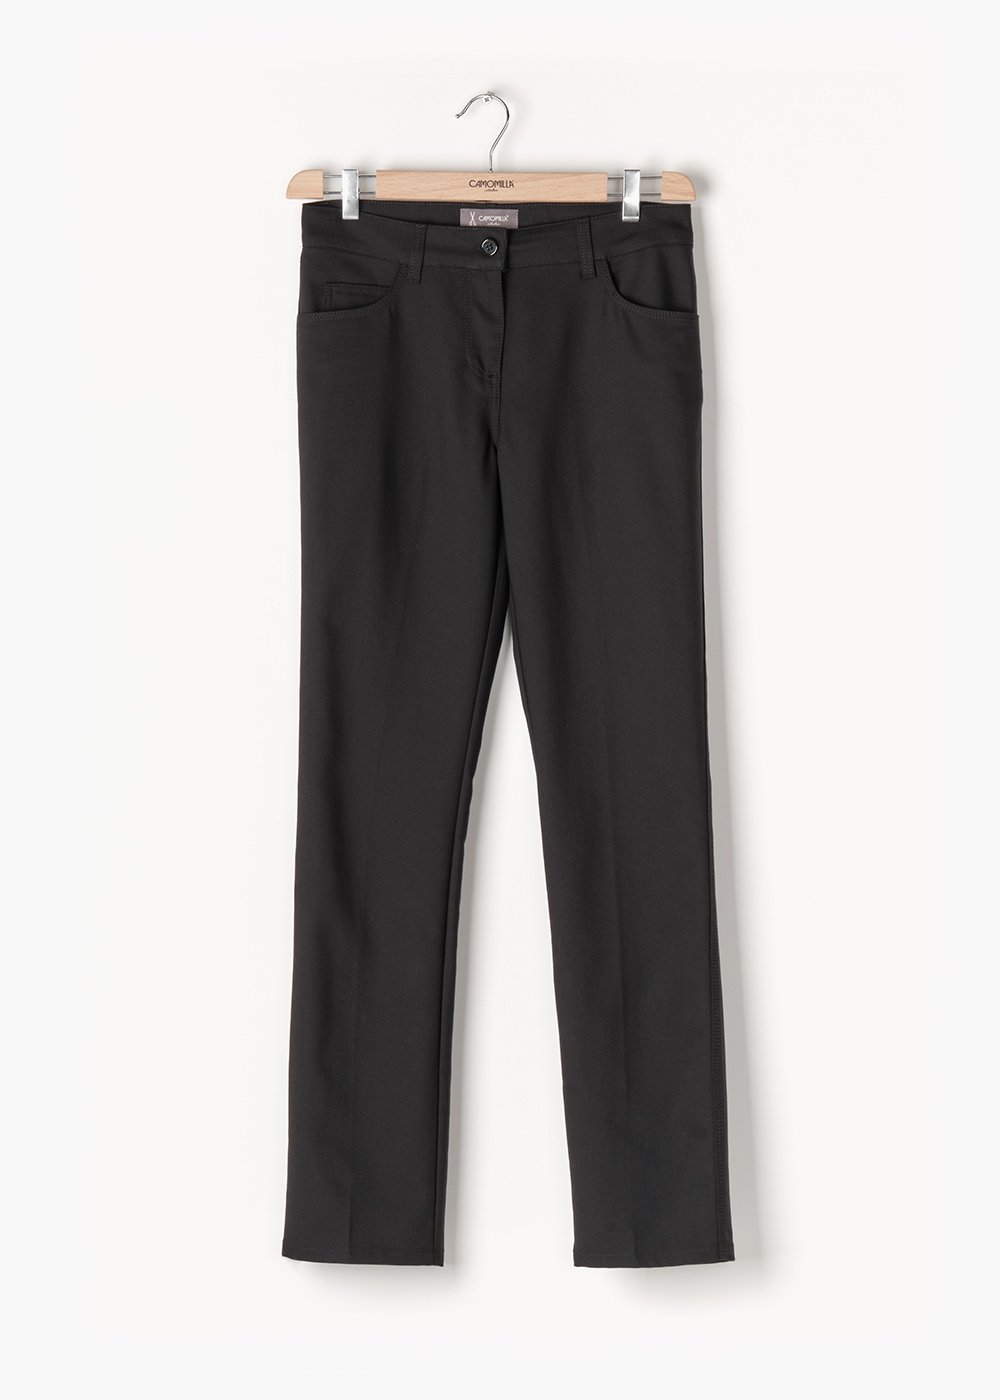 Trousers in 5-pocket Carrie in technical fabric